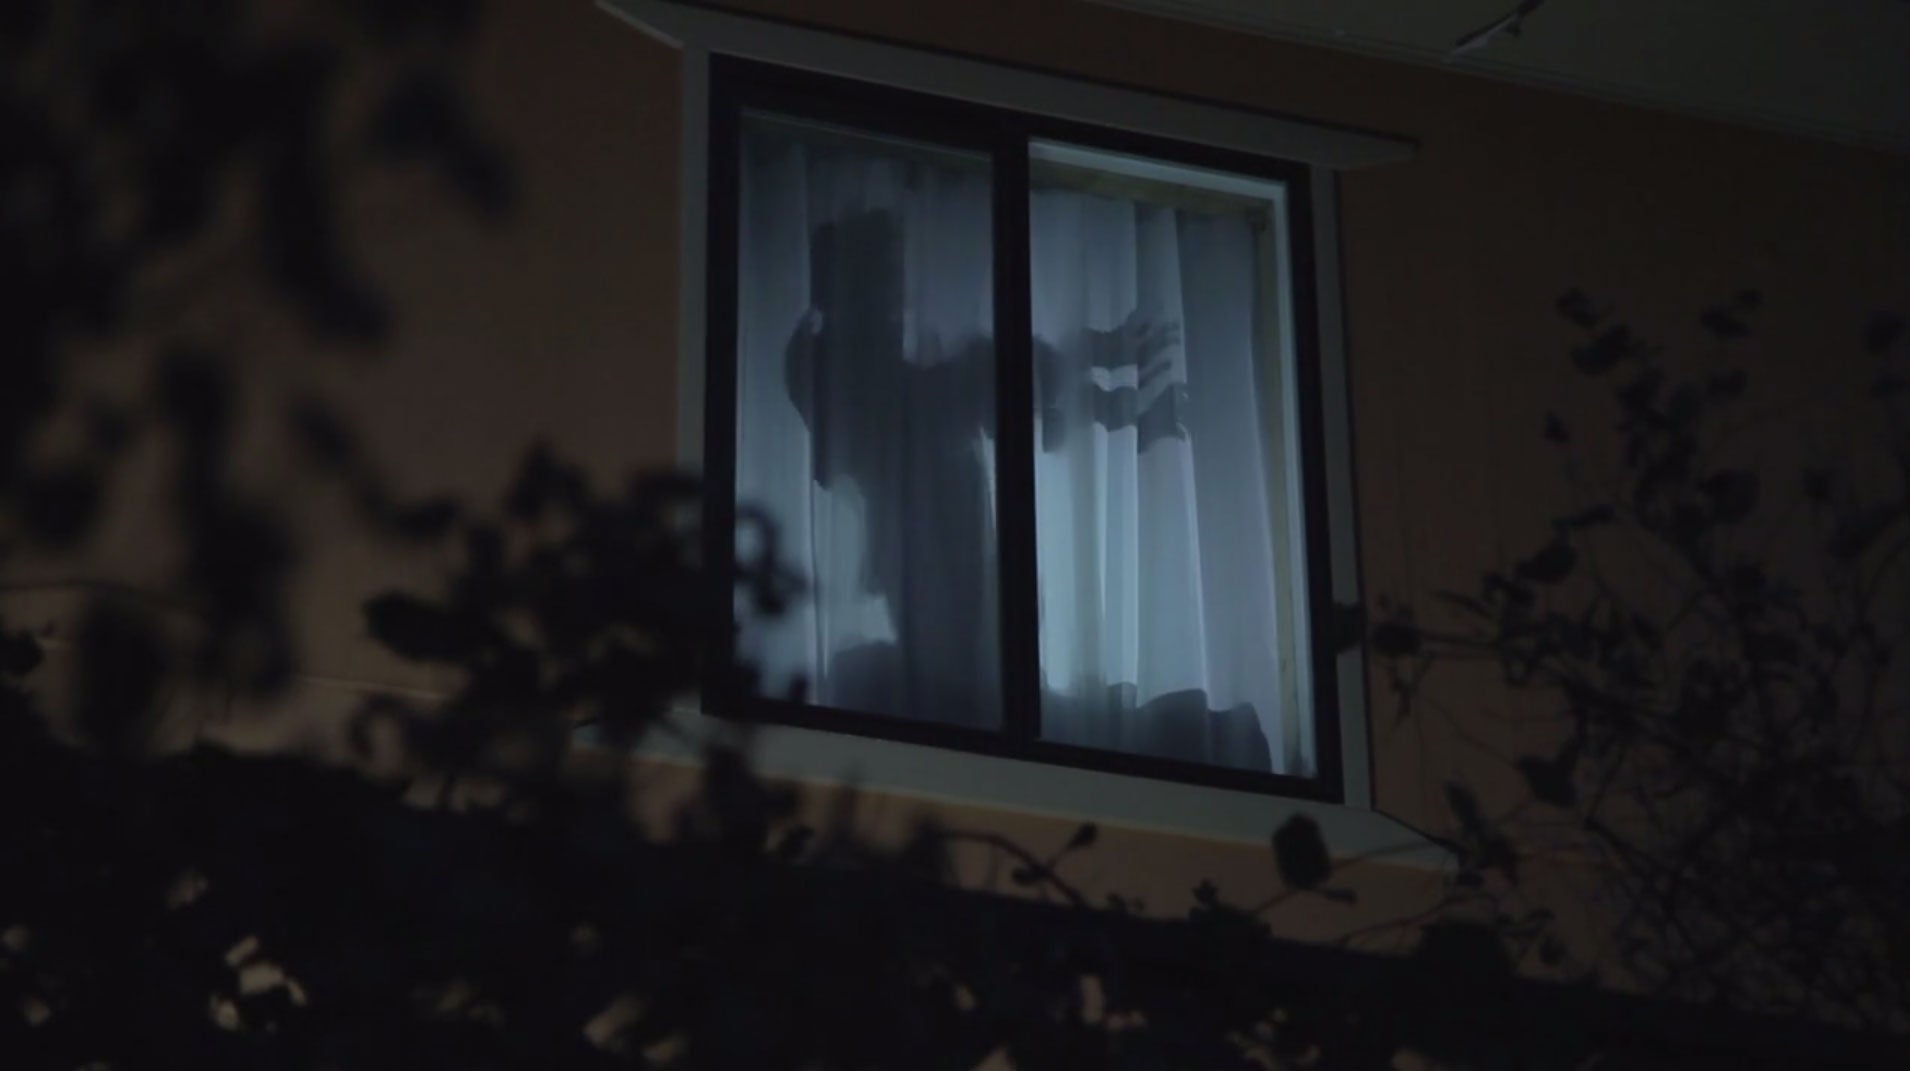 Inside house windows at night -  A Piece Of Atmosgear Window Projection Material Will Provide The Realistic Looking Illusion Of People Or Creatures Wandering Around Inside Your House